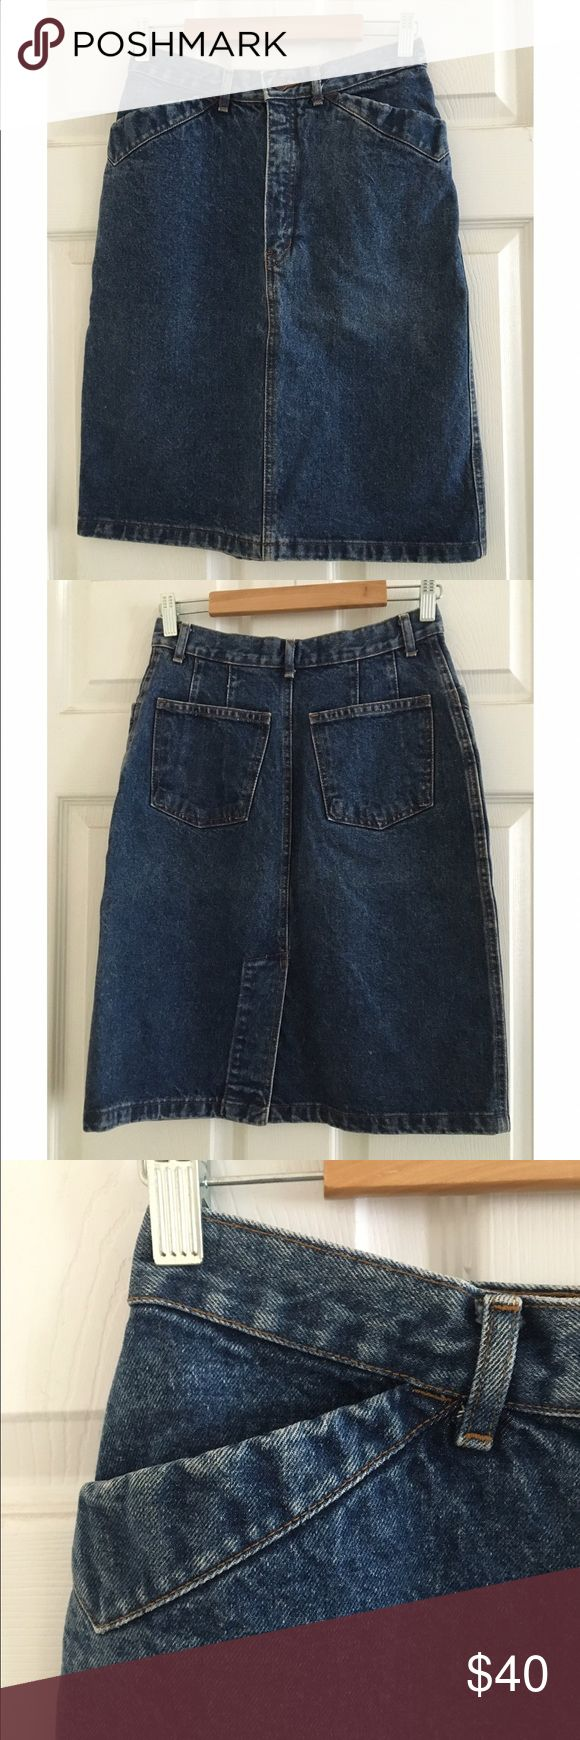 Vintage GAP Tight Denim Pencil Mini Skirt Sz. 25 Super cute vintage GAP denim pencil skirt! Cool pockets and sexy fit! Fits size 25 waist or Sz. 0/1 *I do not discuss pricing in comments, please make me an offer!* Vintage Skirts Pencil